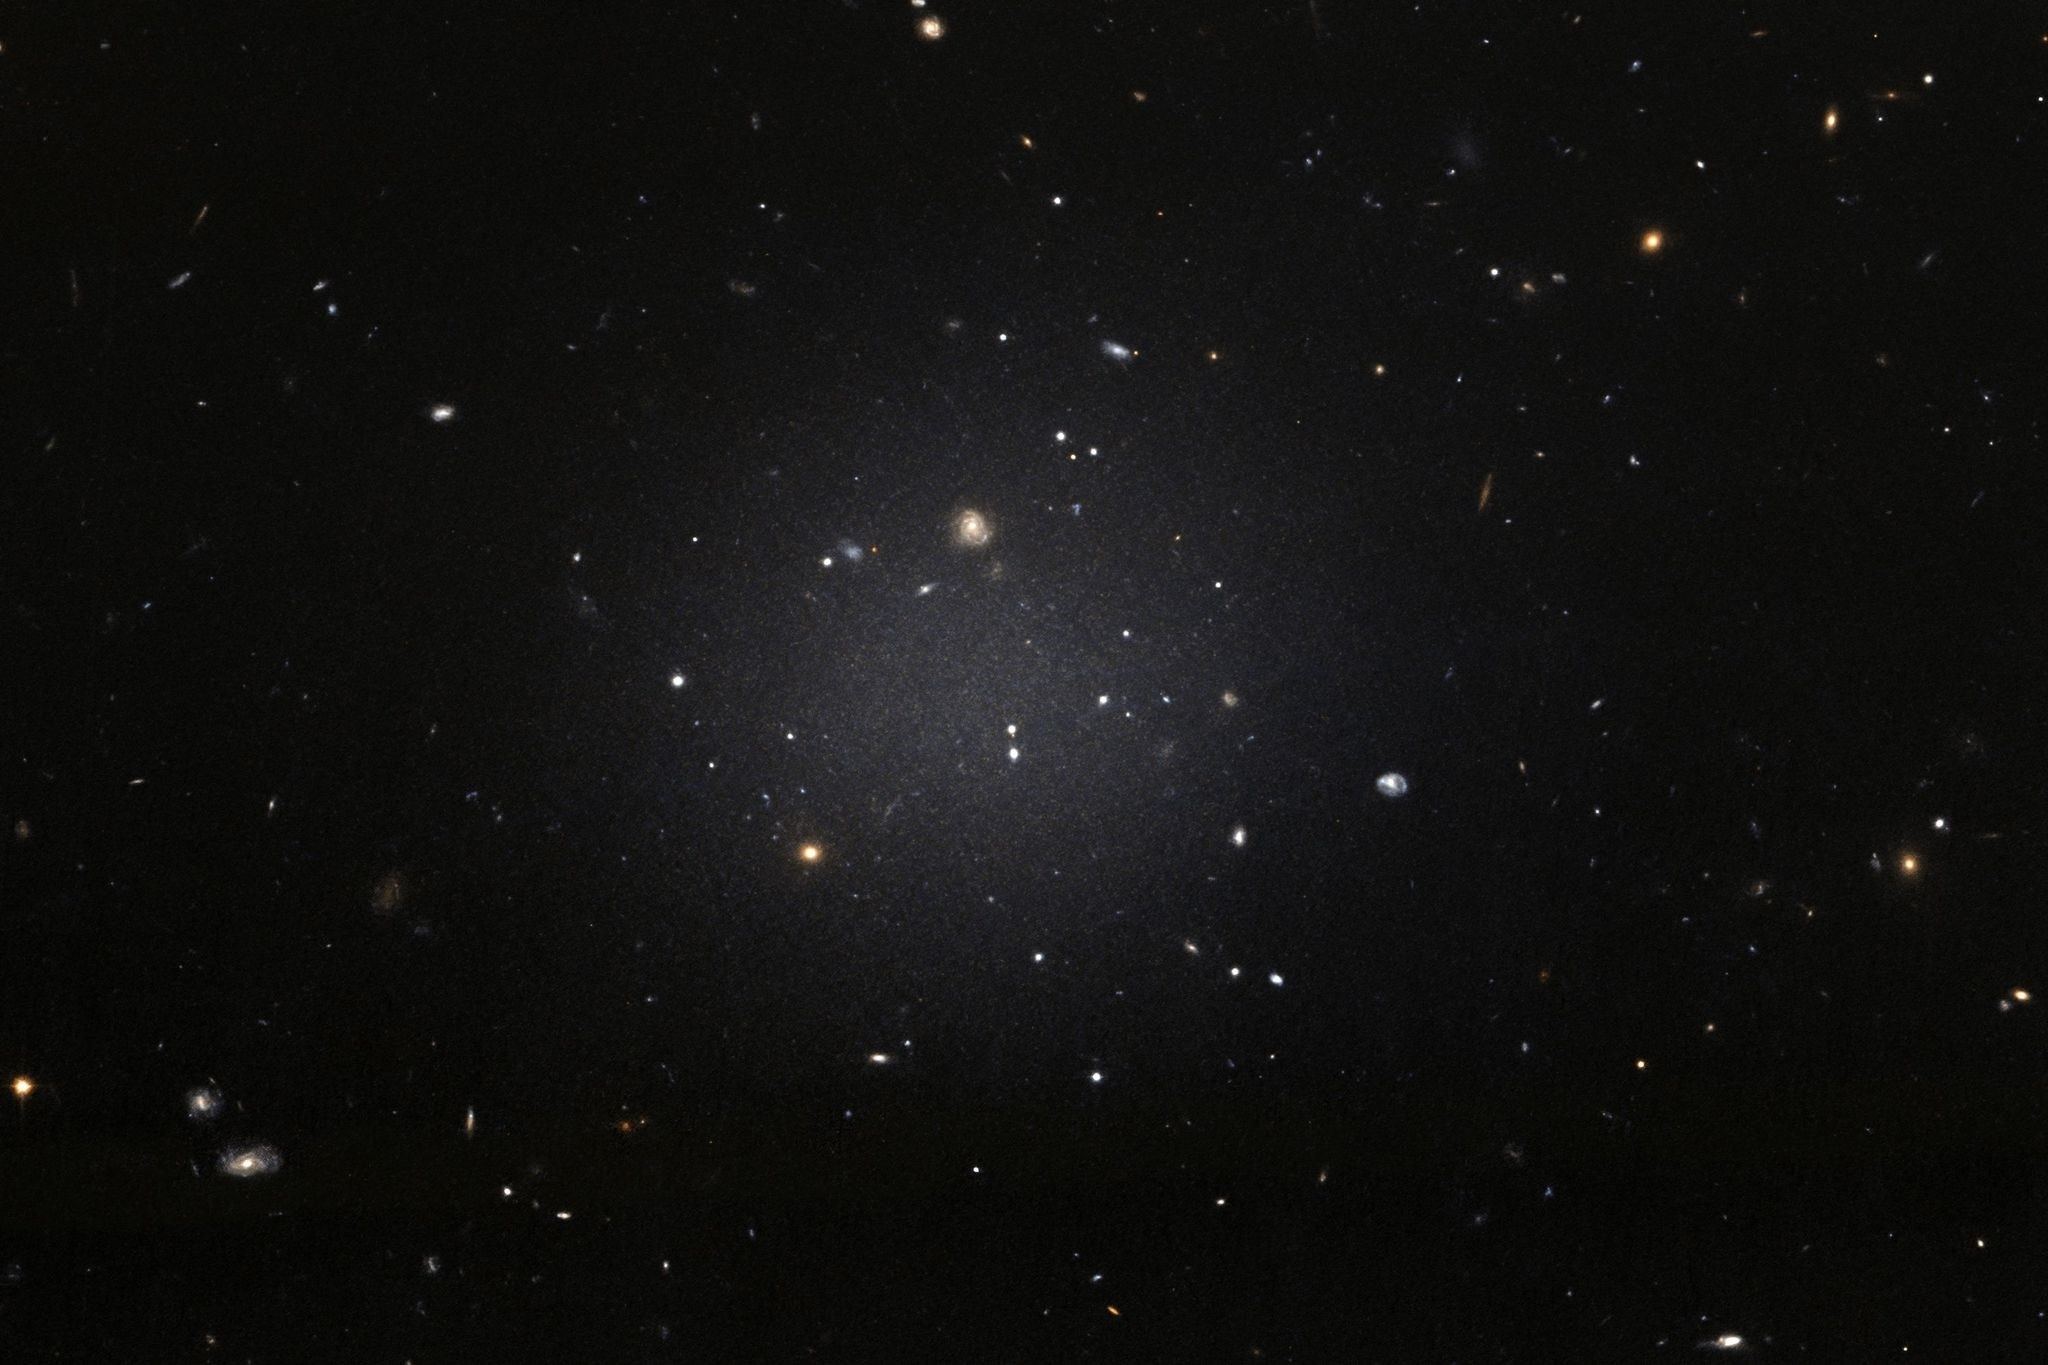 This handout image released by the European Space Agency (ESA) from the NASA/ESA Hubble Space Telescope shows the NGC 1052-DF2 galaxy which is missing most, if not all, of its dark matter. (AFP Photo)